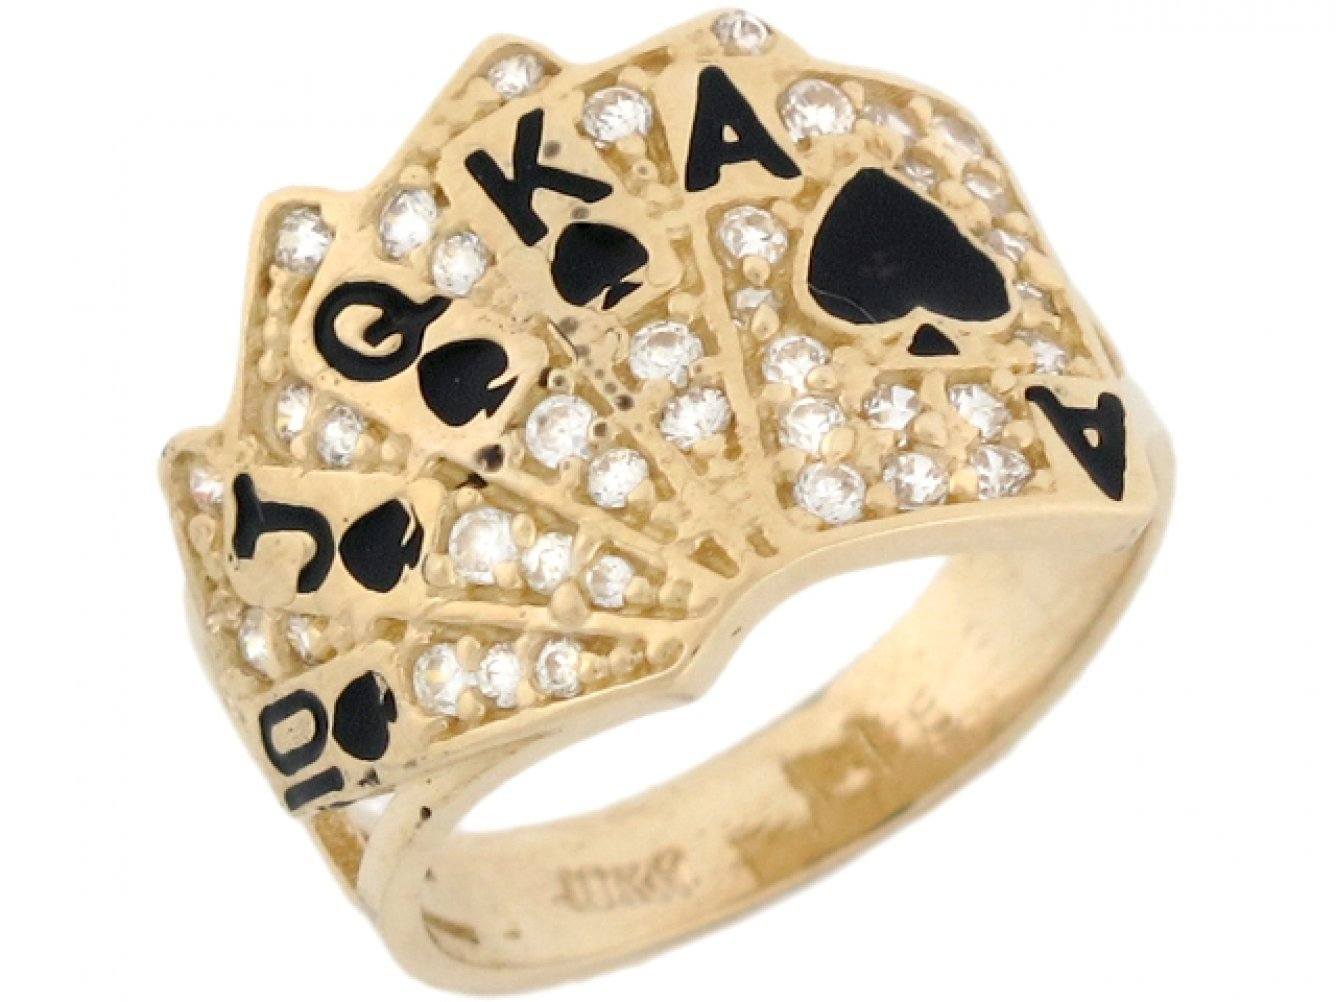 14k Real Solid Gold CZ Royal Flush Poker Card Enamel Lucky Unisex Ring by Jewelry Liquidation (Image #2)